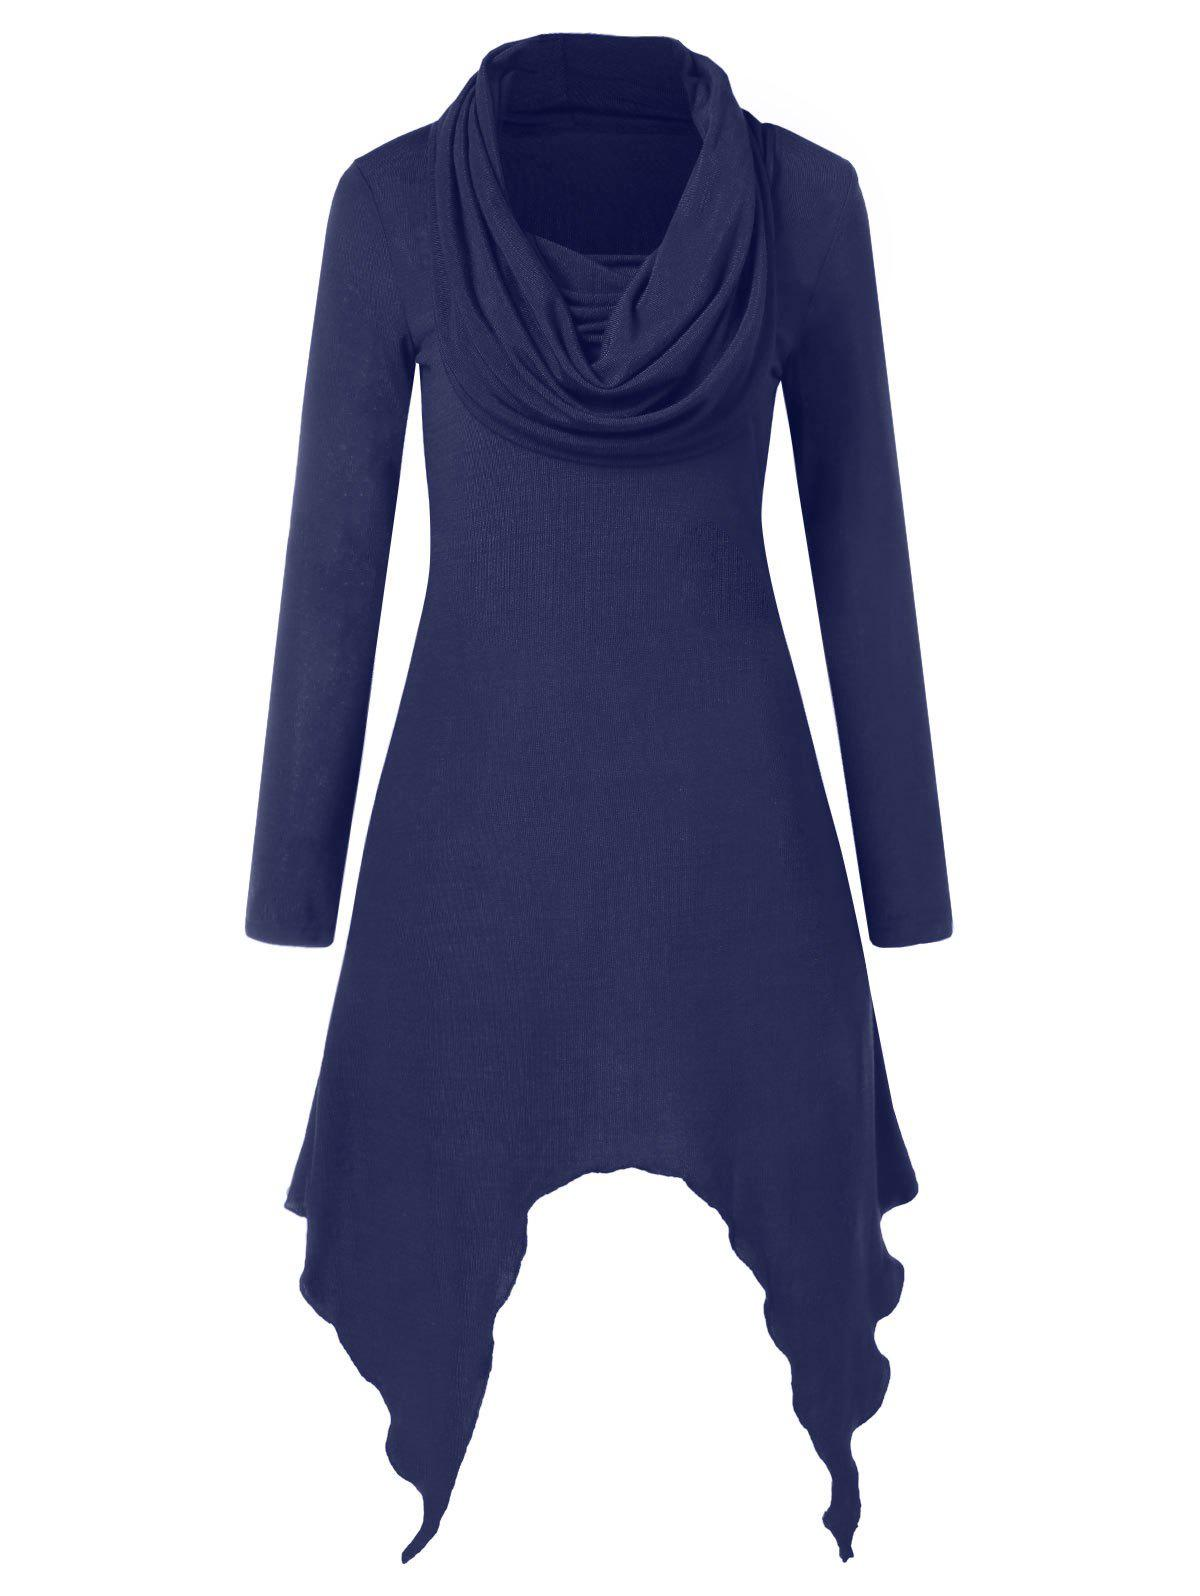 Discount Cowl Neck Full Sleeve Handkerchief Dress